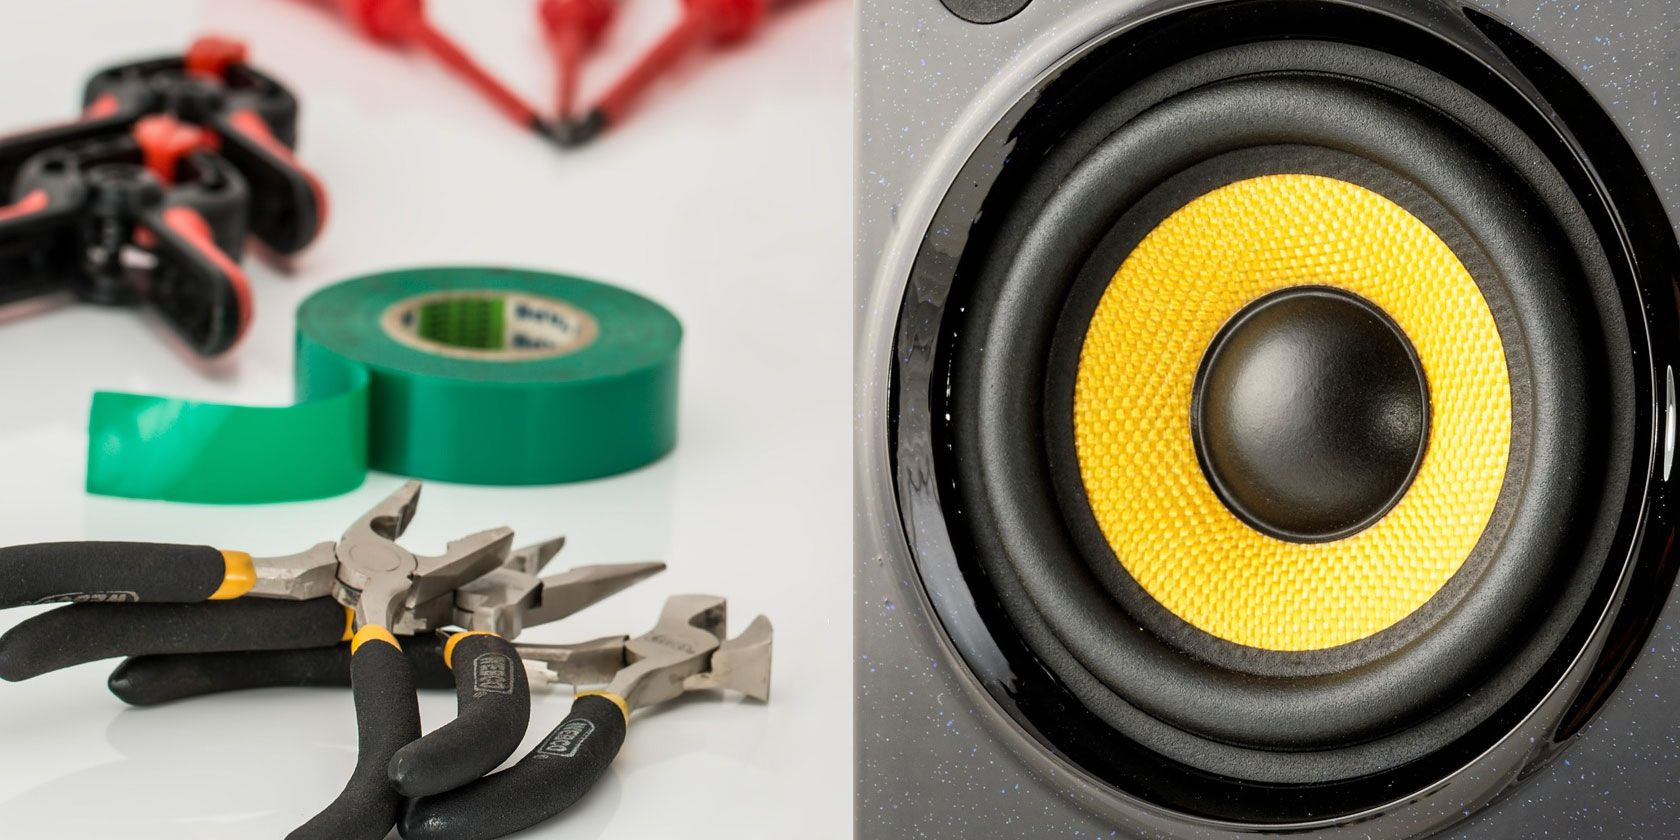 7 Creative Projects to Repurpose or Recycle Old Speakers